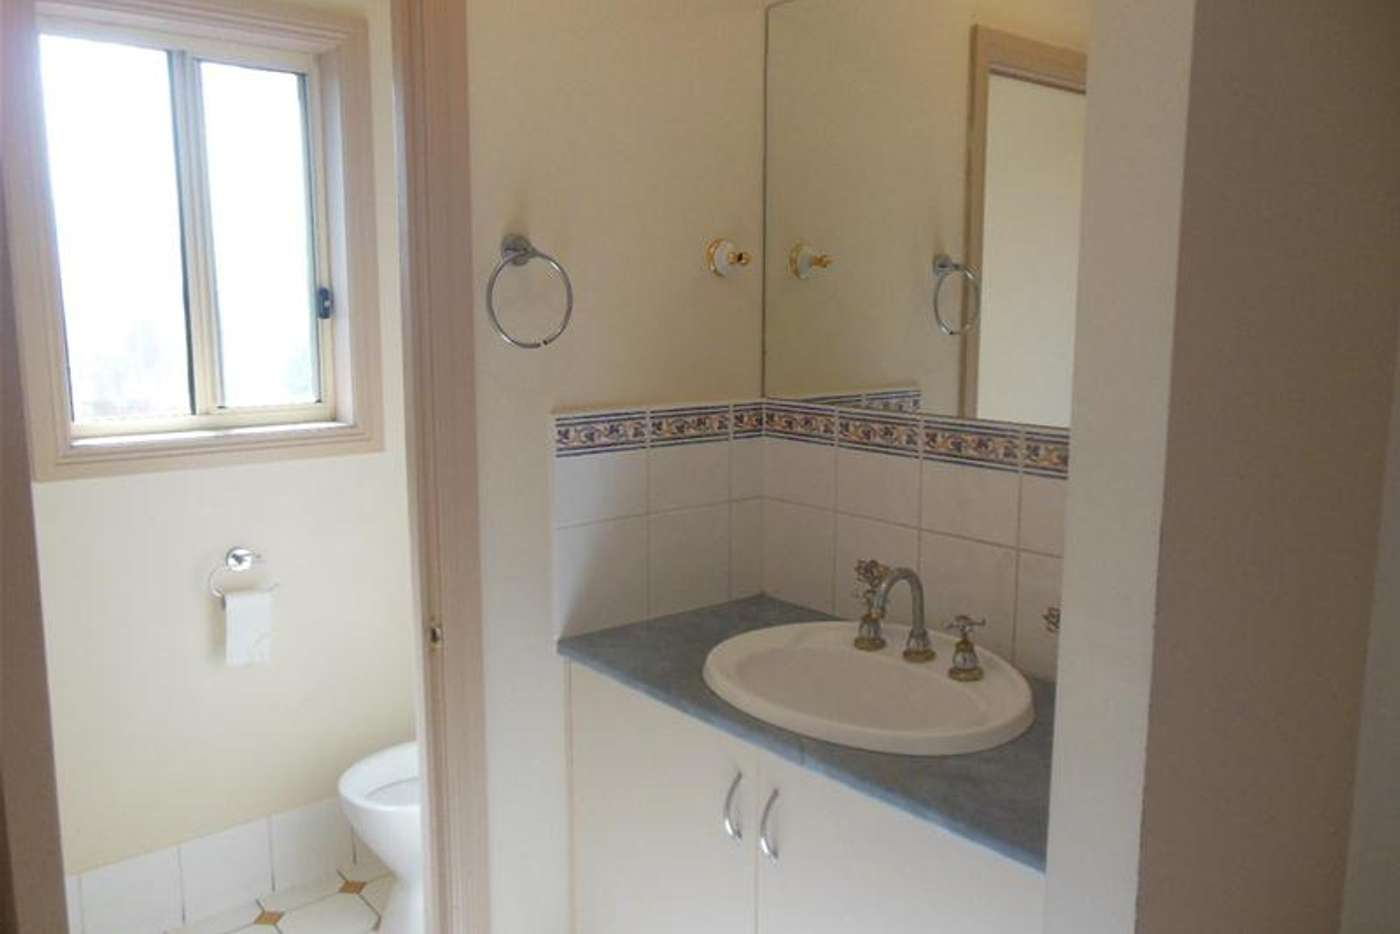 Sixth view of Homely house listing, 14 Culver Avenue, Salisbury North SA 5108